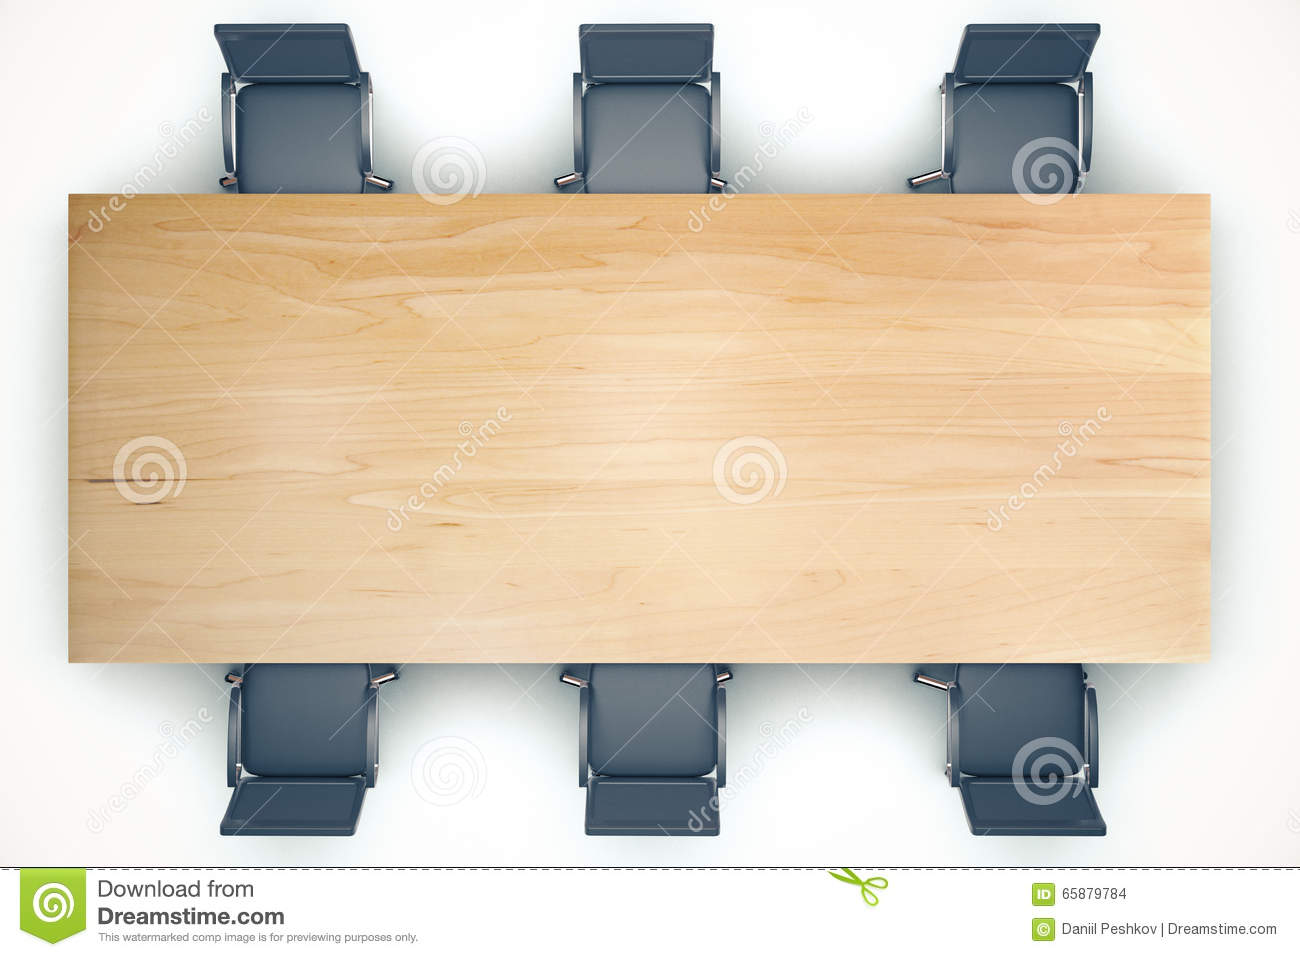 table and chairs top view autocad top view on conference wooden table and black chairs view on conference wooden table and black chairs stock